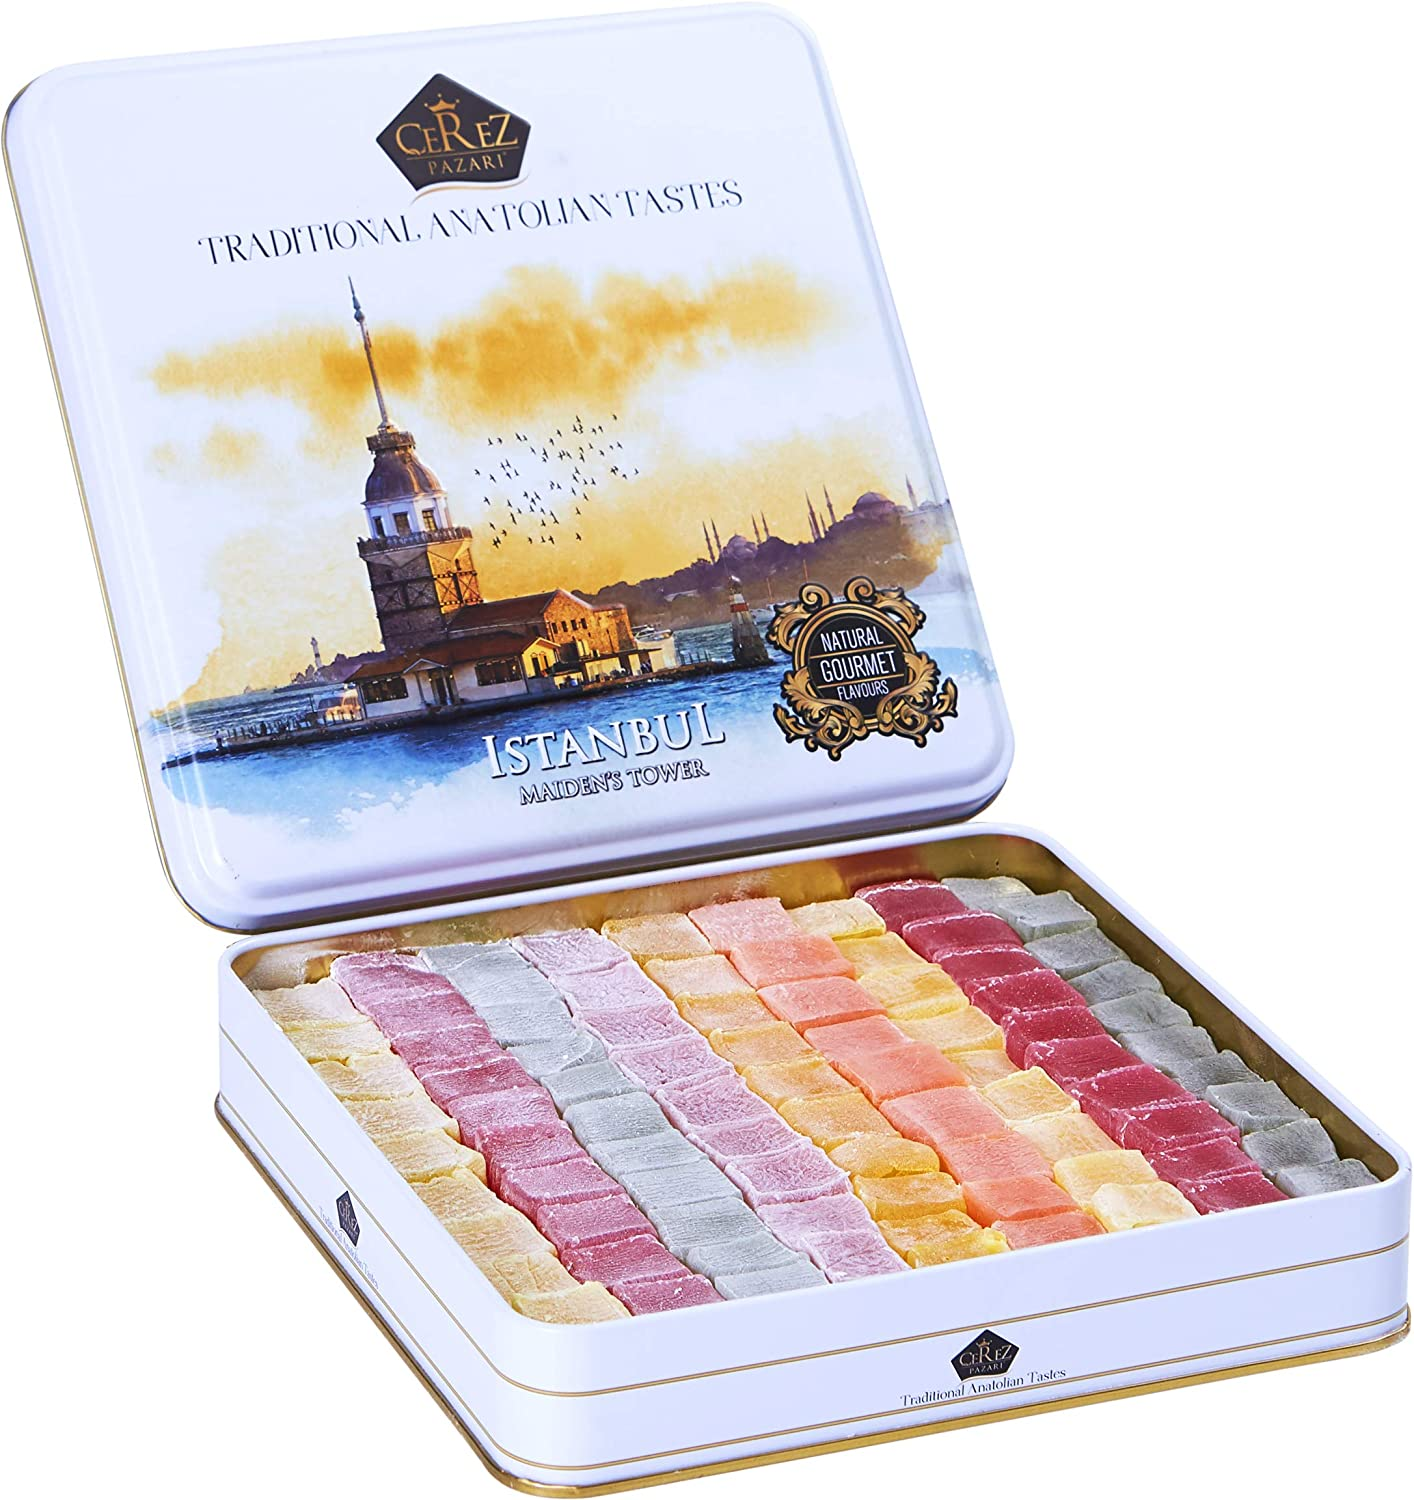 Cerez Pazari Turkish Delight Candy Gift Basket 2.2Lbs ℮, Luxury Lokum Dessert Gourmet Christmas Holiday Corporate Food Gifts in Elegant Tin Box, Thanksgiving, Halloween, Birthday with 6 Unique Flavors (No Nuts) Approx. 90 Pcs